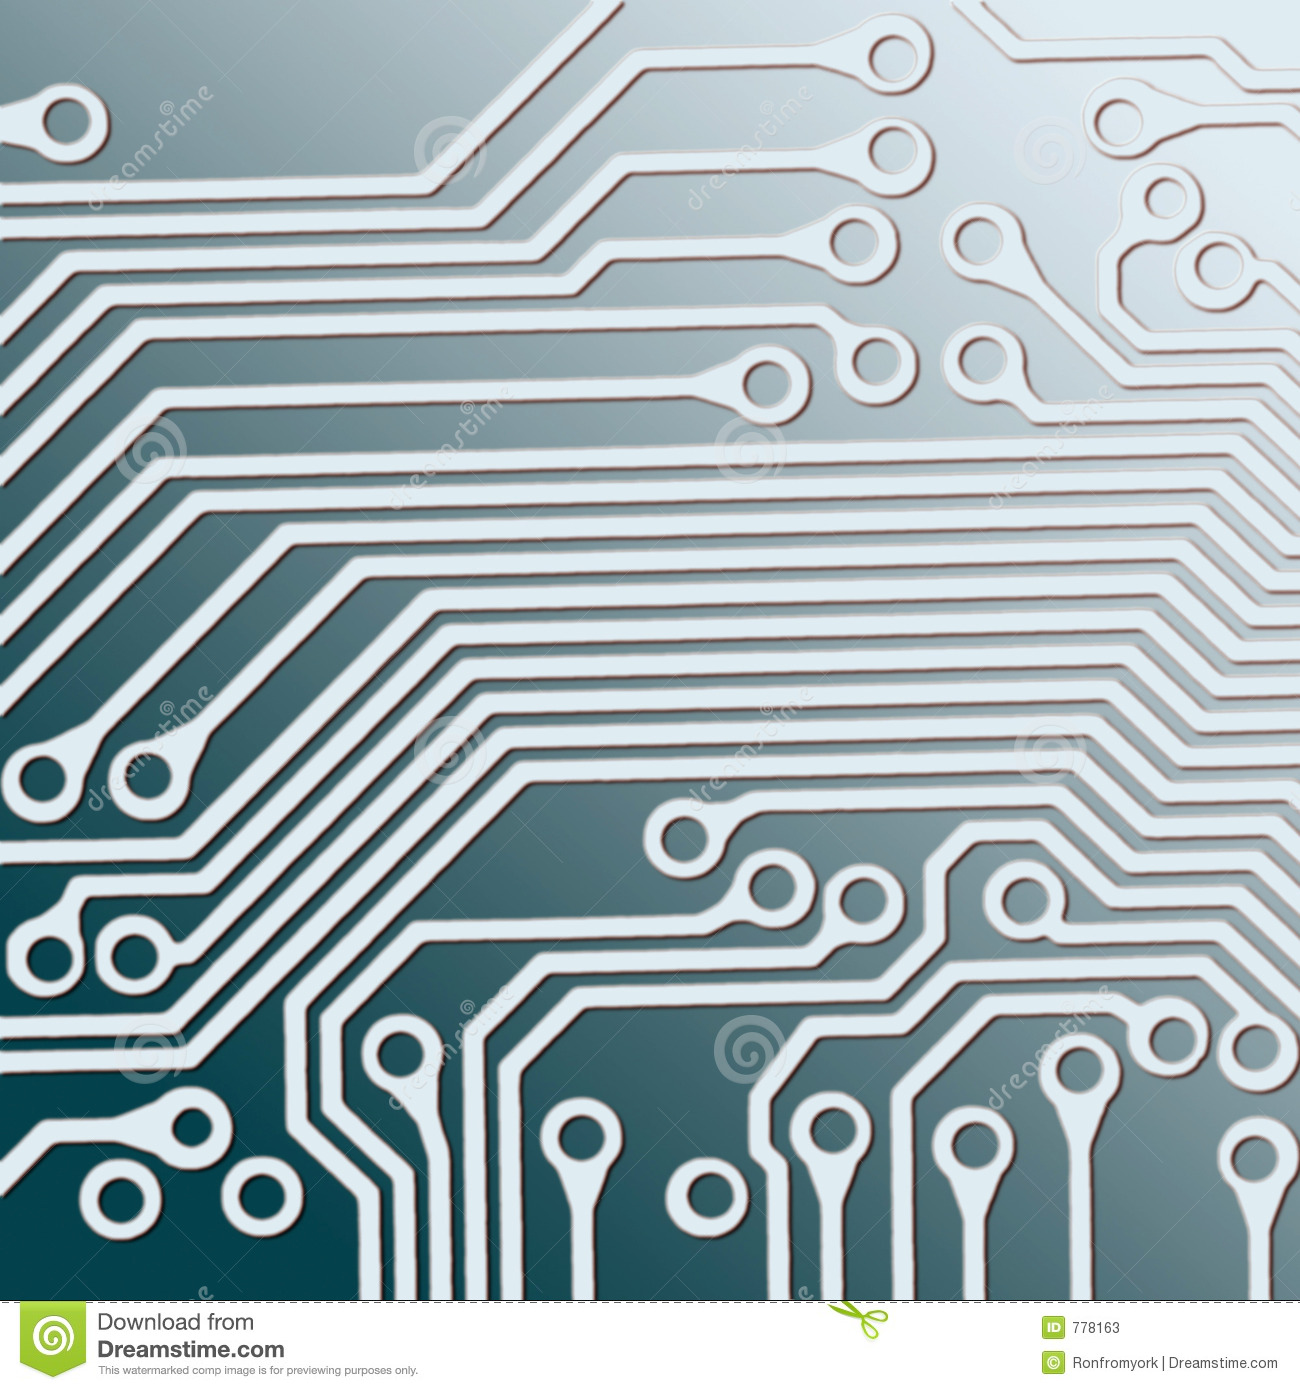 Circuit Board Stock Photos Auto Electrical Wiring Diagram Electronic Image 19113403